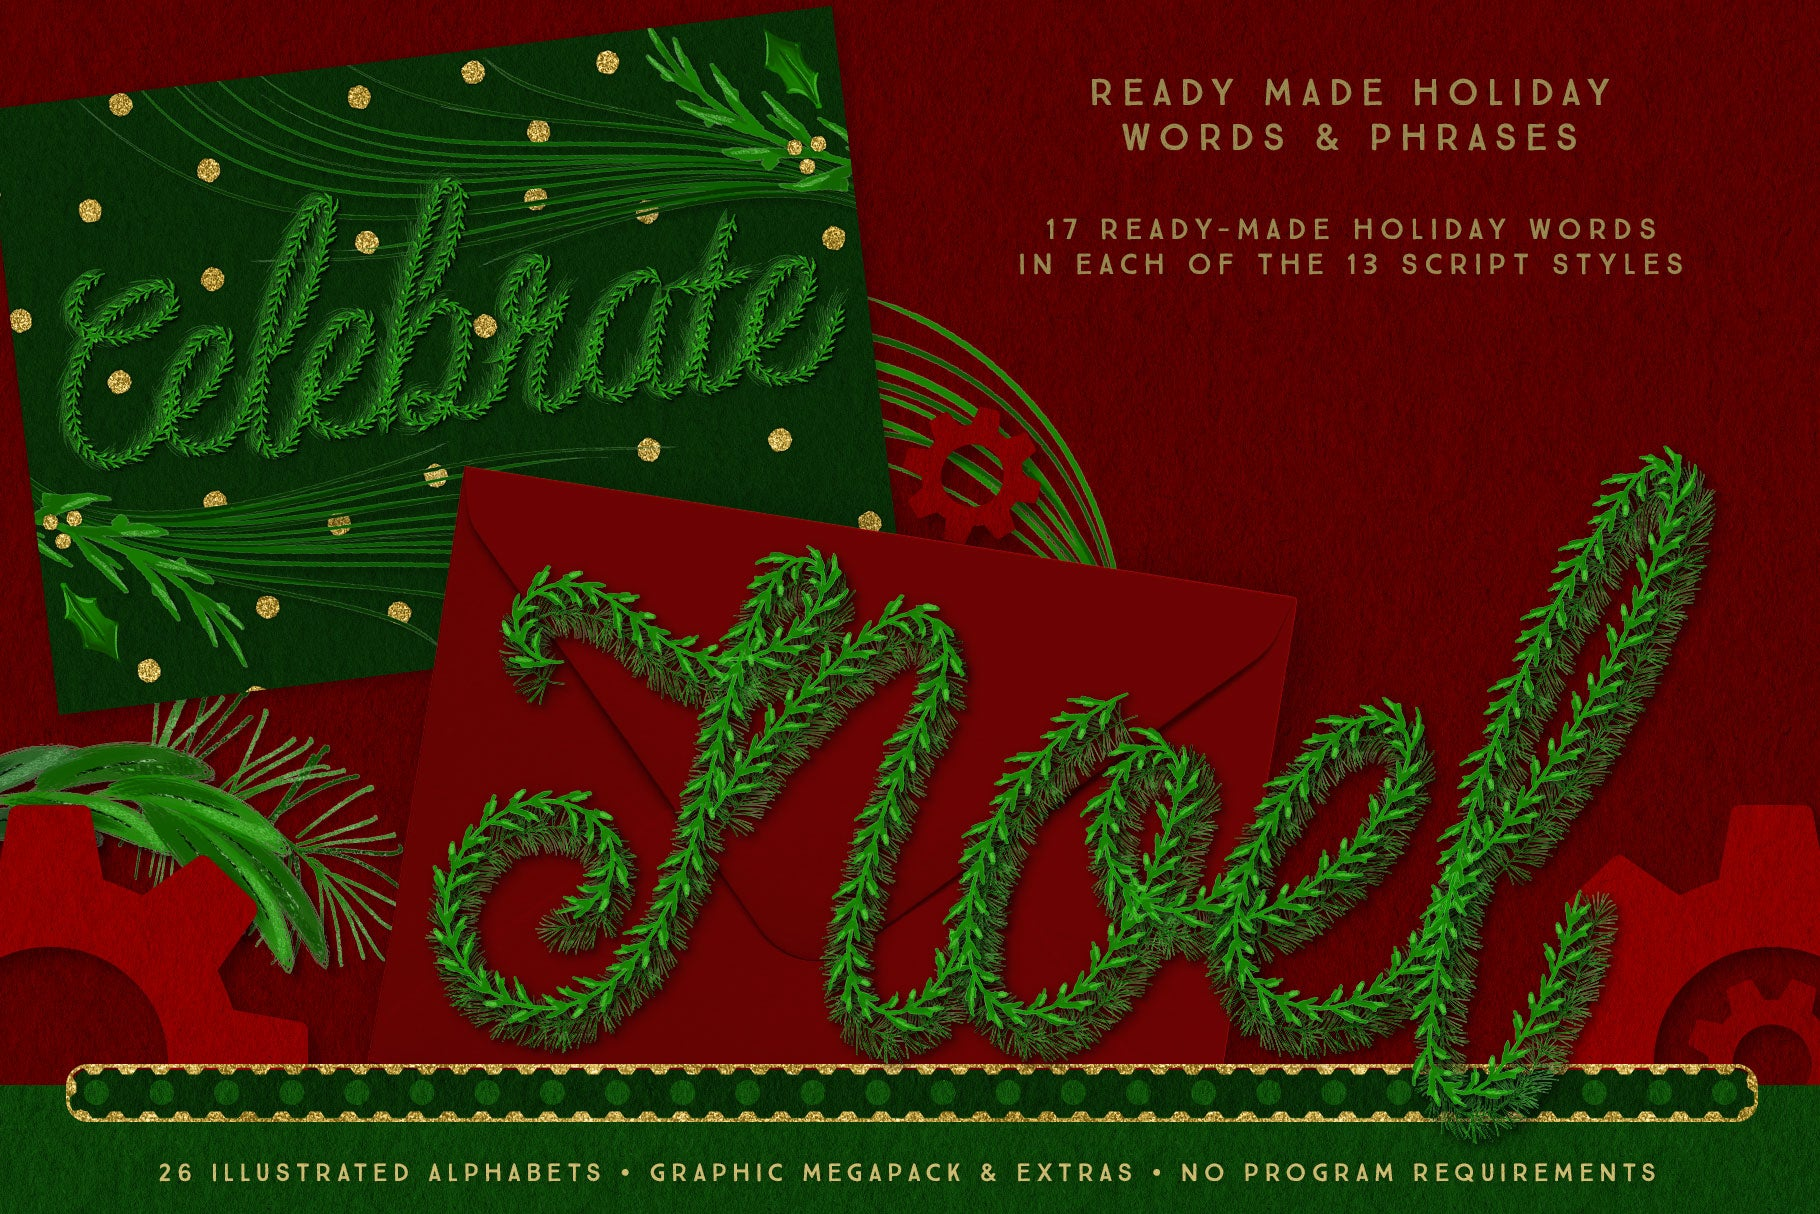 Luxe Christmas & Holiday Greenery Alphabets: ready made holiday phrases